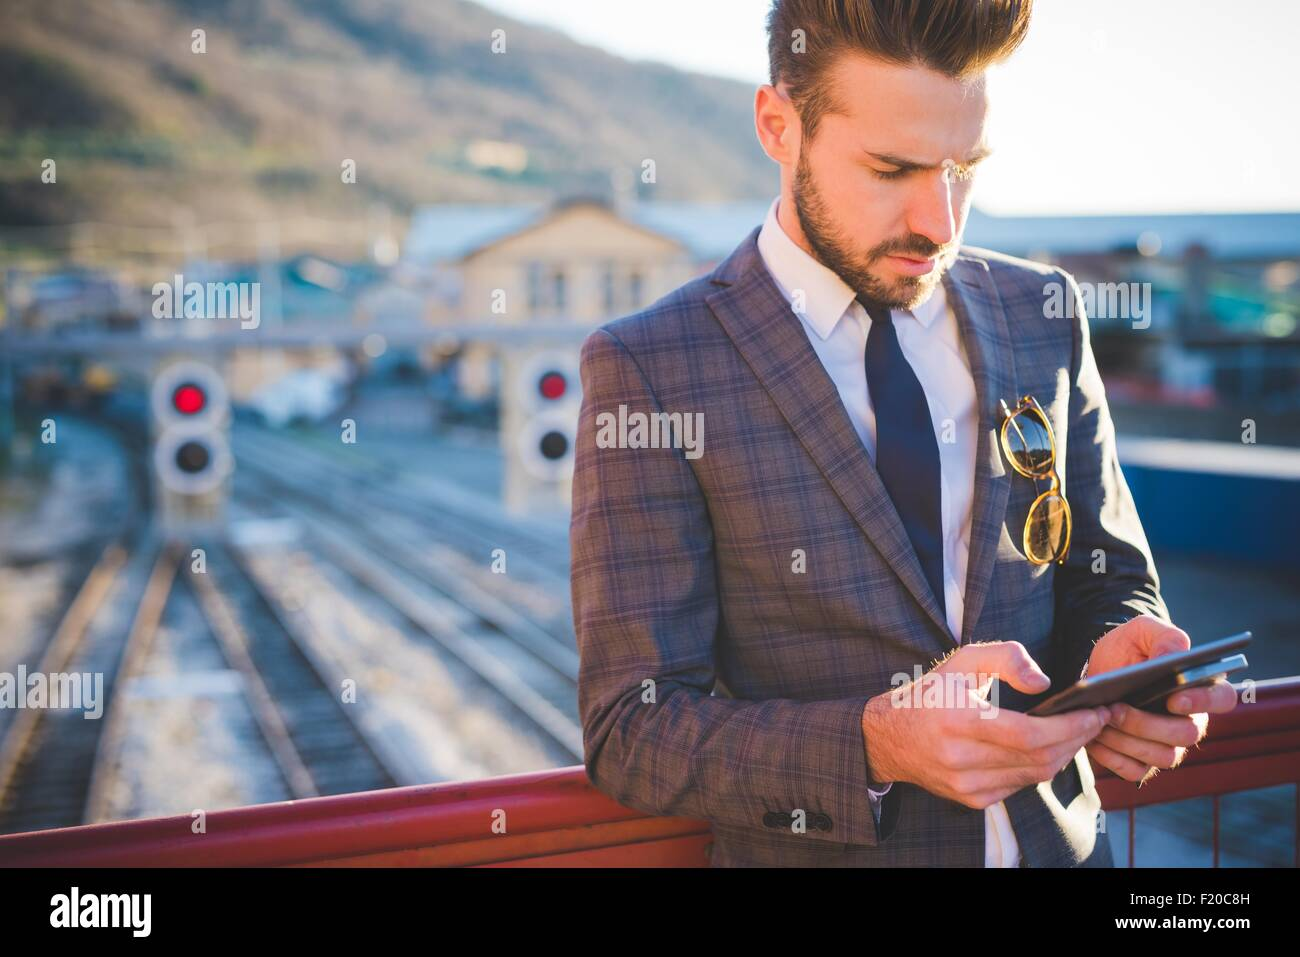 Young man with using digital tablet on railway footbridge - Stock Image